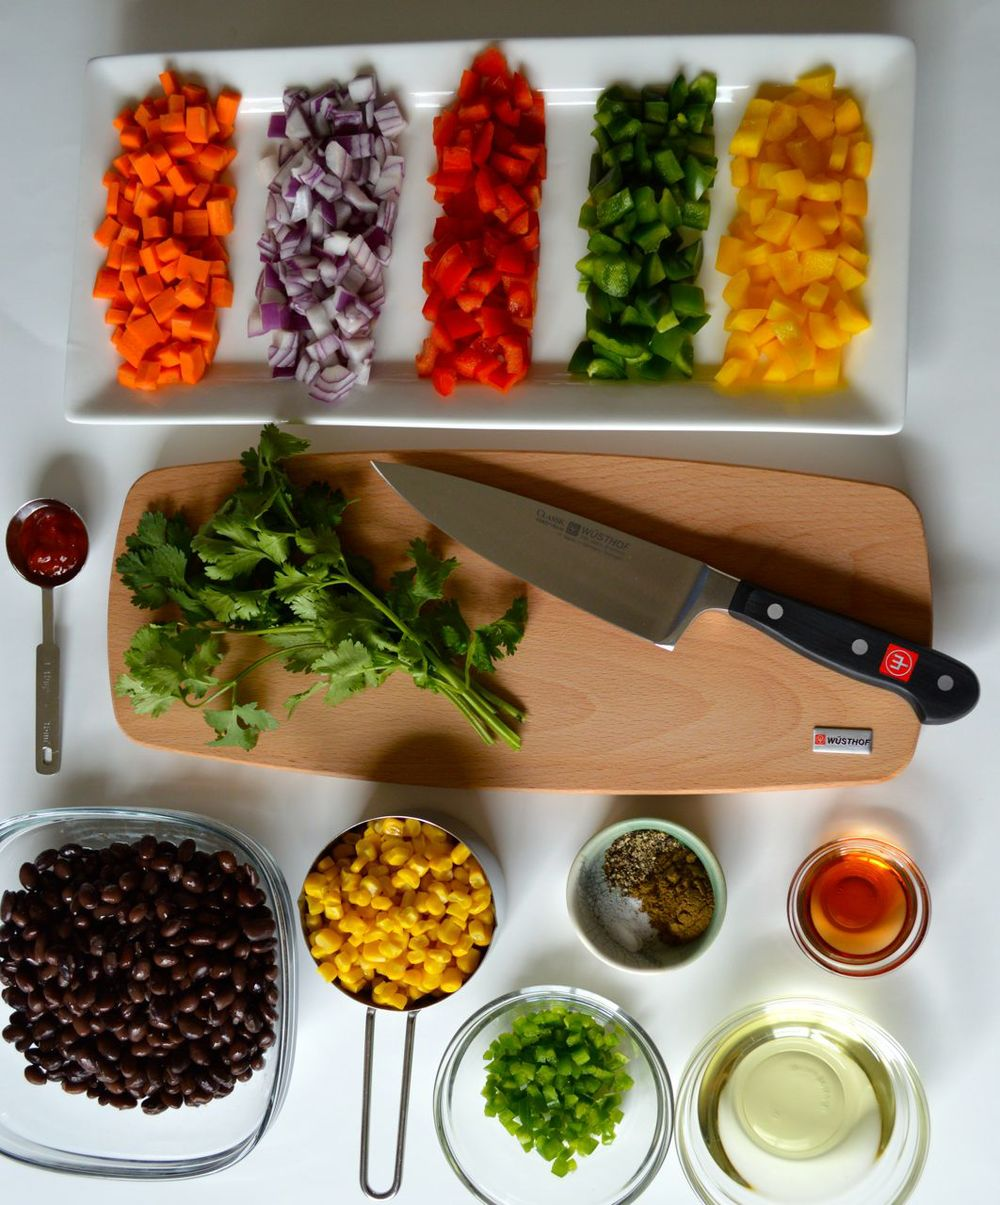 Ingredients for Coco's Chopped Salad